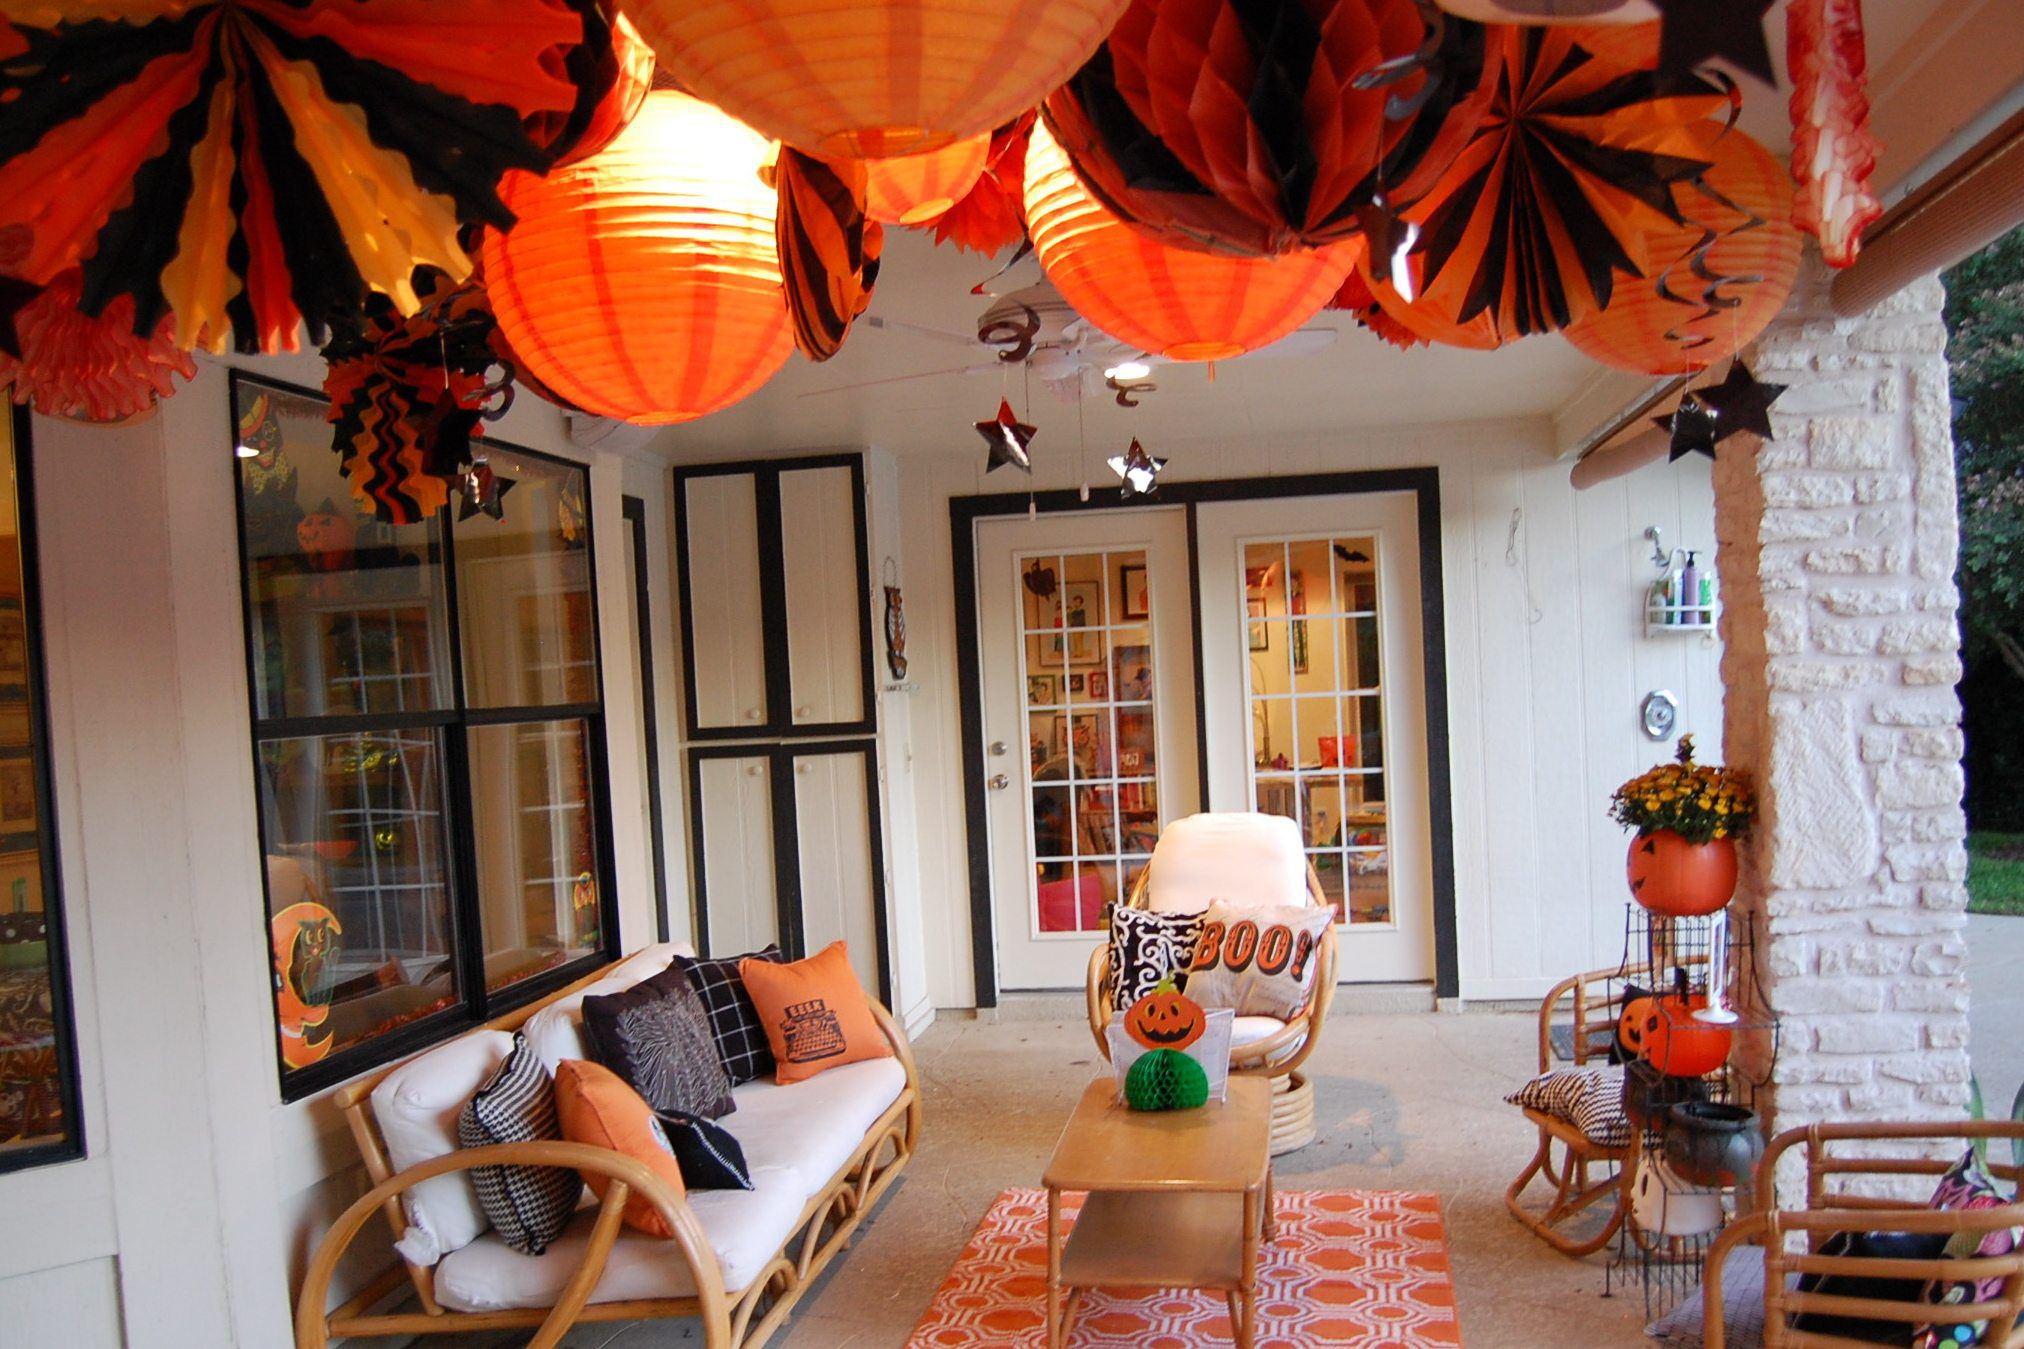 Decorare casa per Halloween